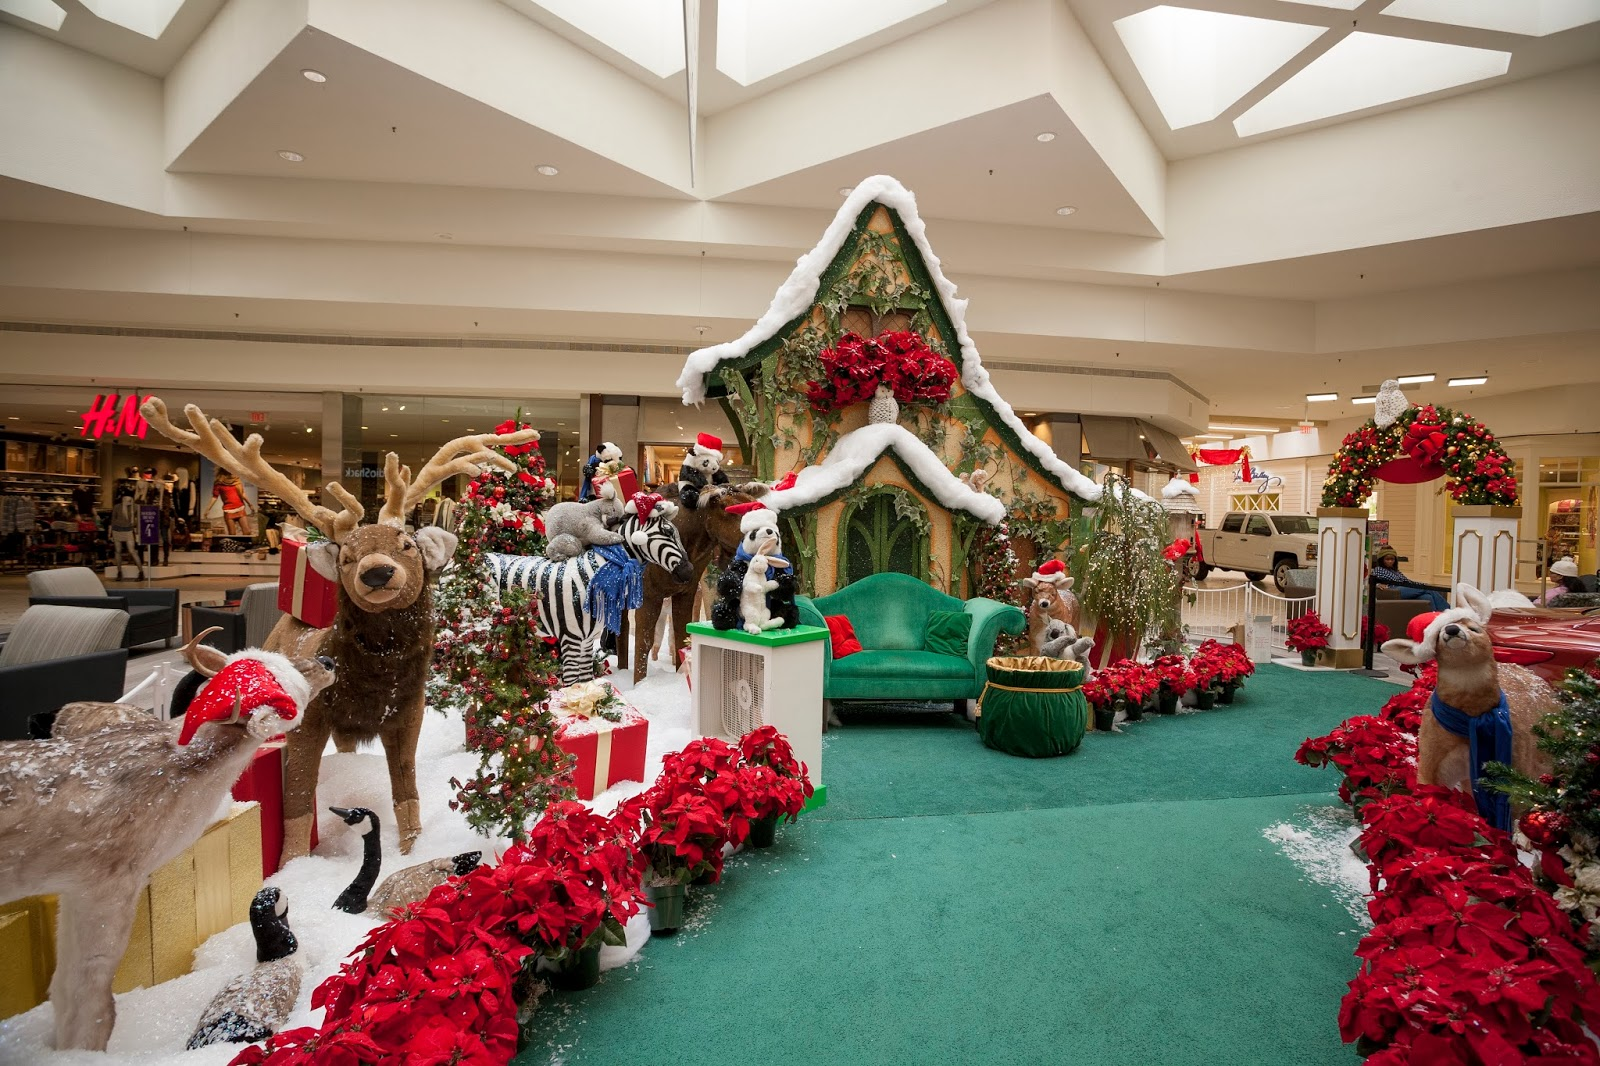 Saturday, Nov. New this year, Santa will take part in a special tree lighting ceremony at the park area outside of Briarwood Mall near the Sears entrance. Santa will be arriving in his convertible Lexus, as his live reindeer mingle and jingle with the crowds.